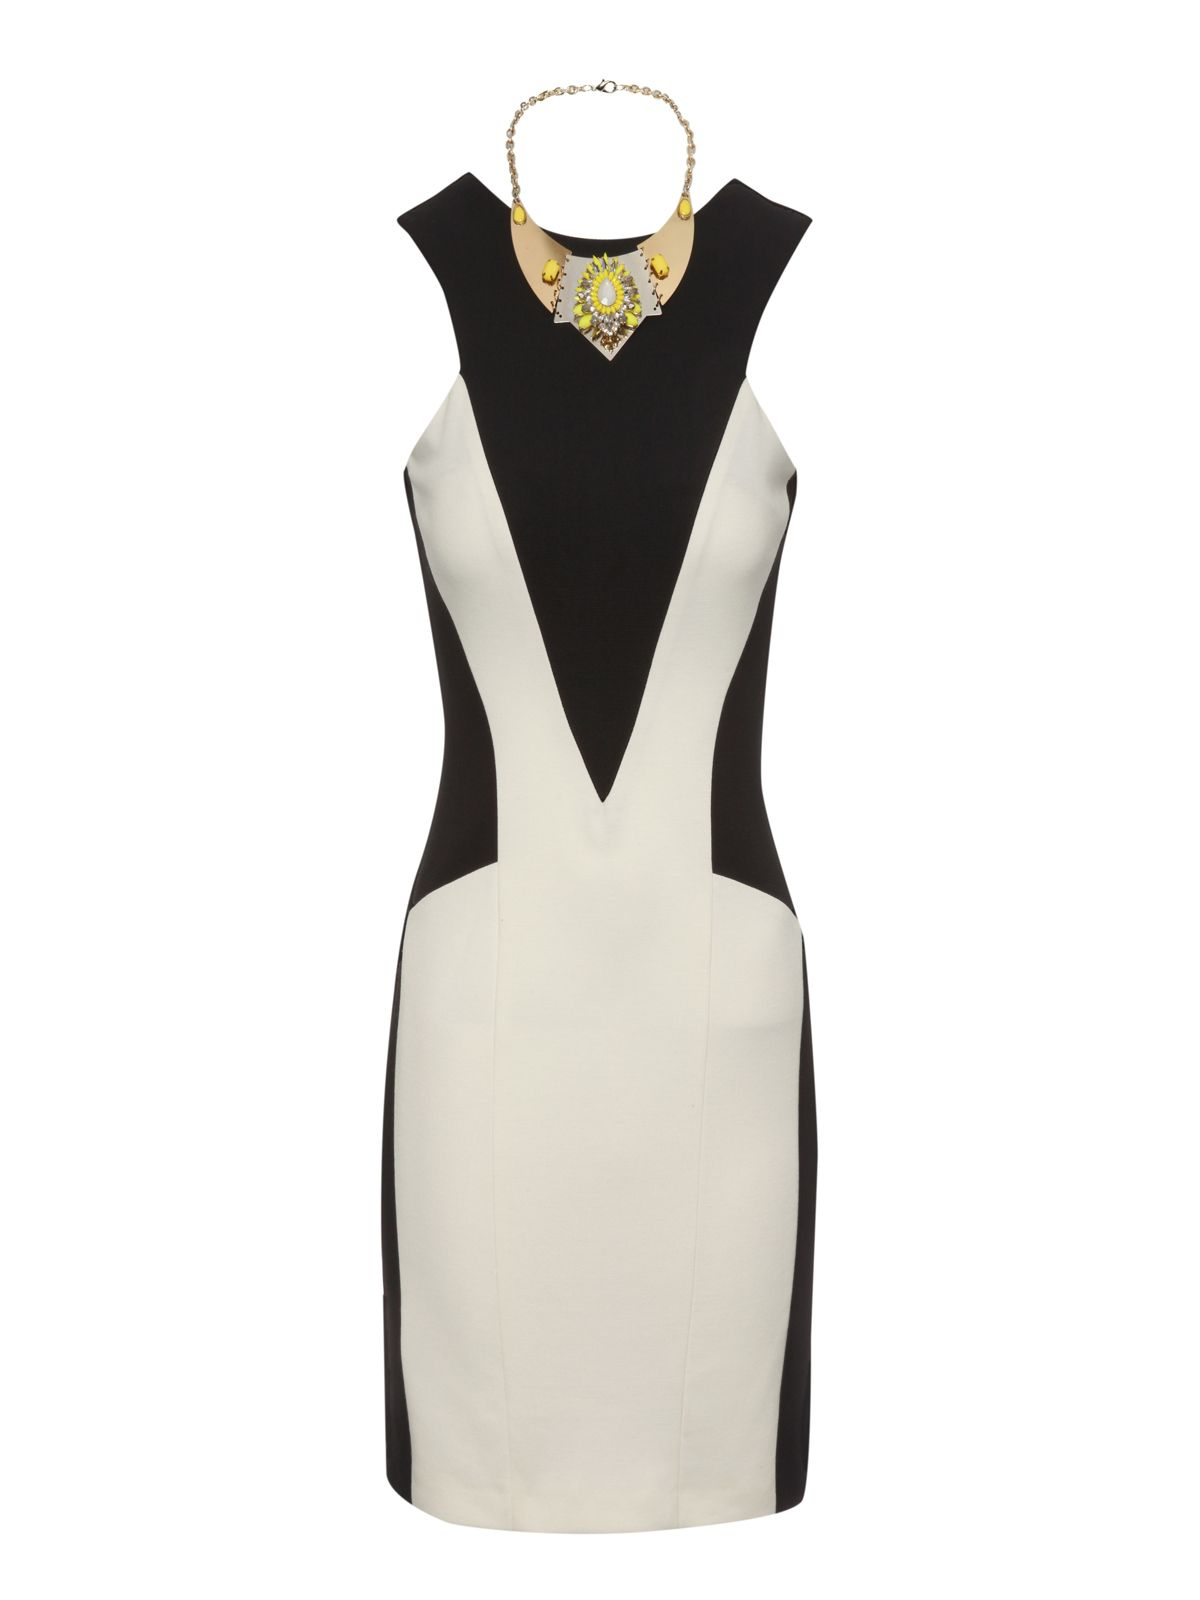 Monochrome Necklace Dress